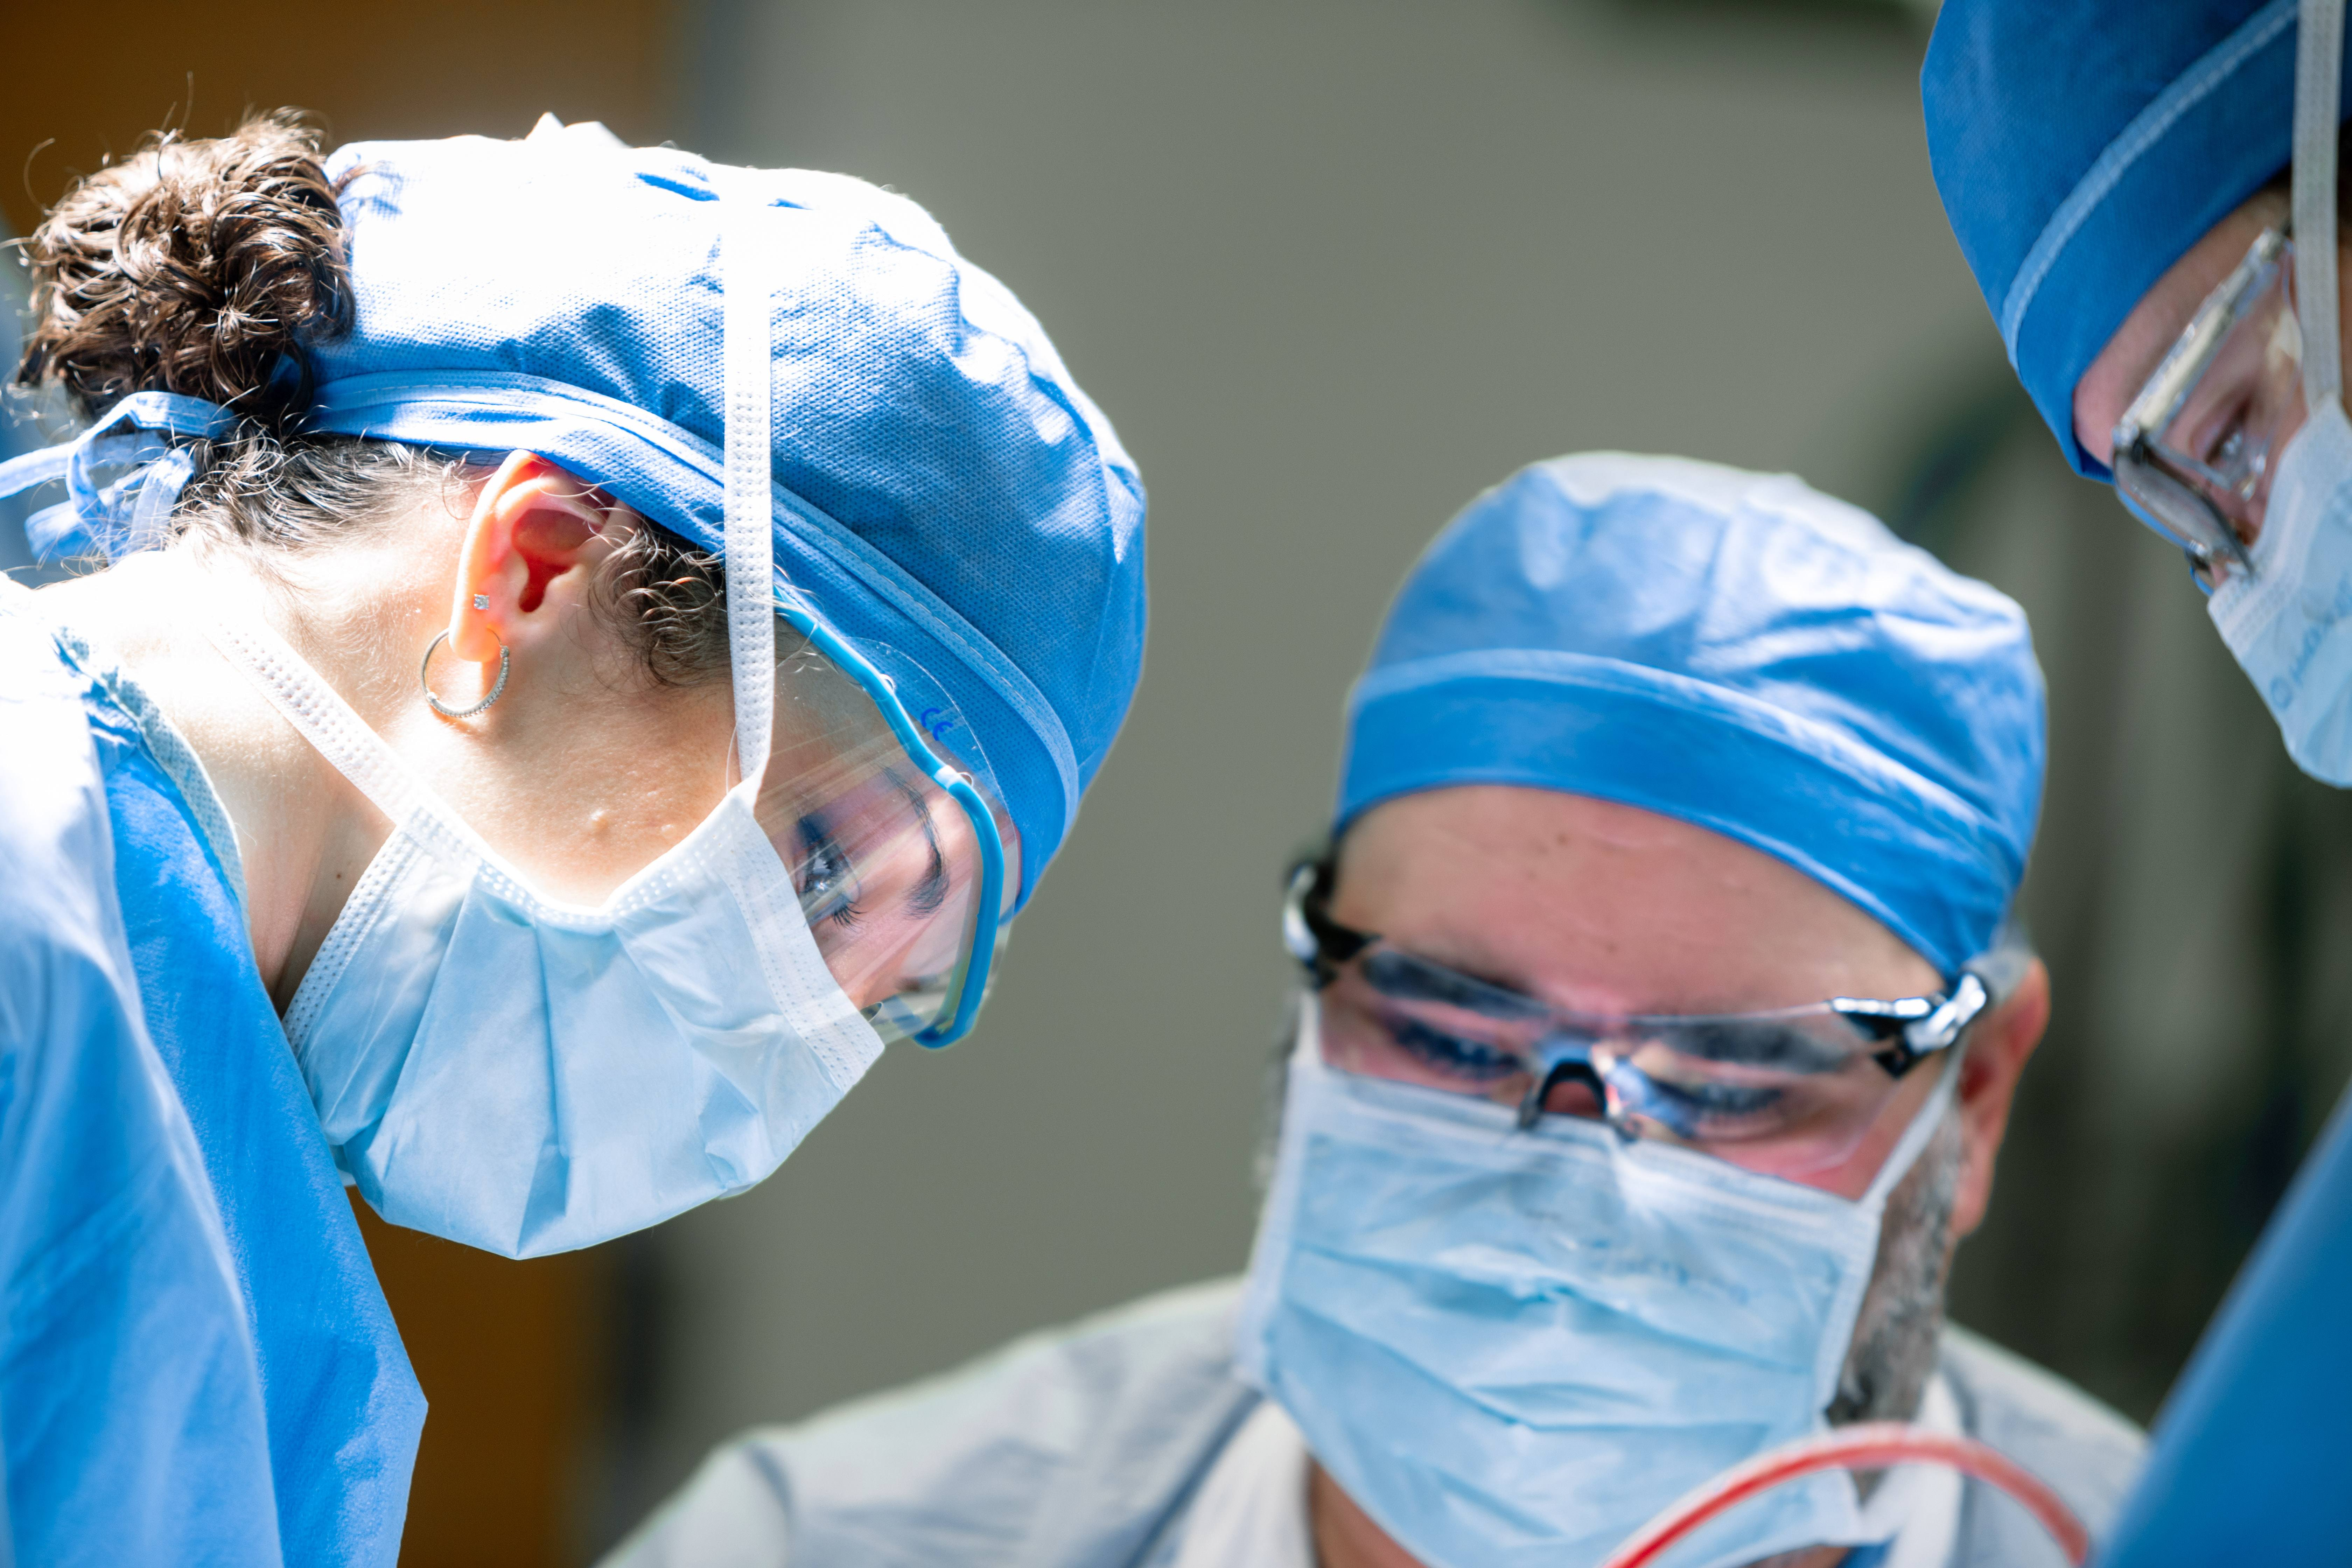 three surgeons operating on a patient while bending over